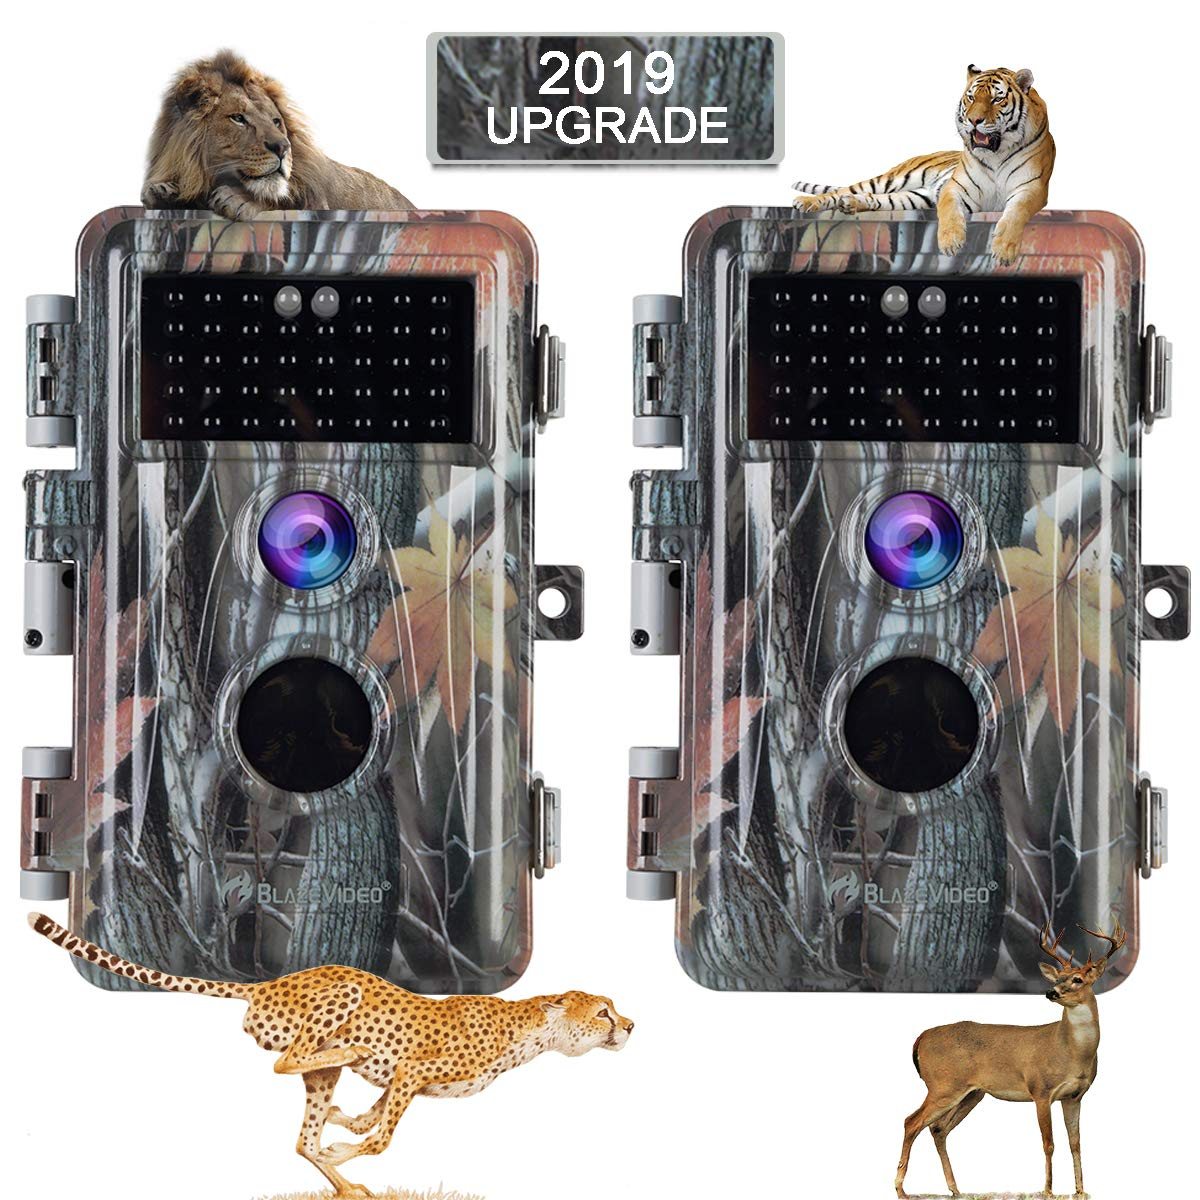 [2019 Upgraded] 2-Pack Night Vision Game Trail Cameras 16MP 1080P No Glow Hunters Deer Hunting Cams IP66 Waterproof & Password Protected Motion Activated Photo & Video Model, Time Stamp & Time Lapse